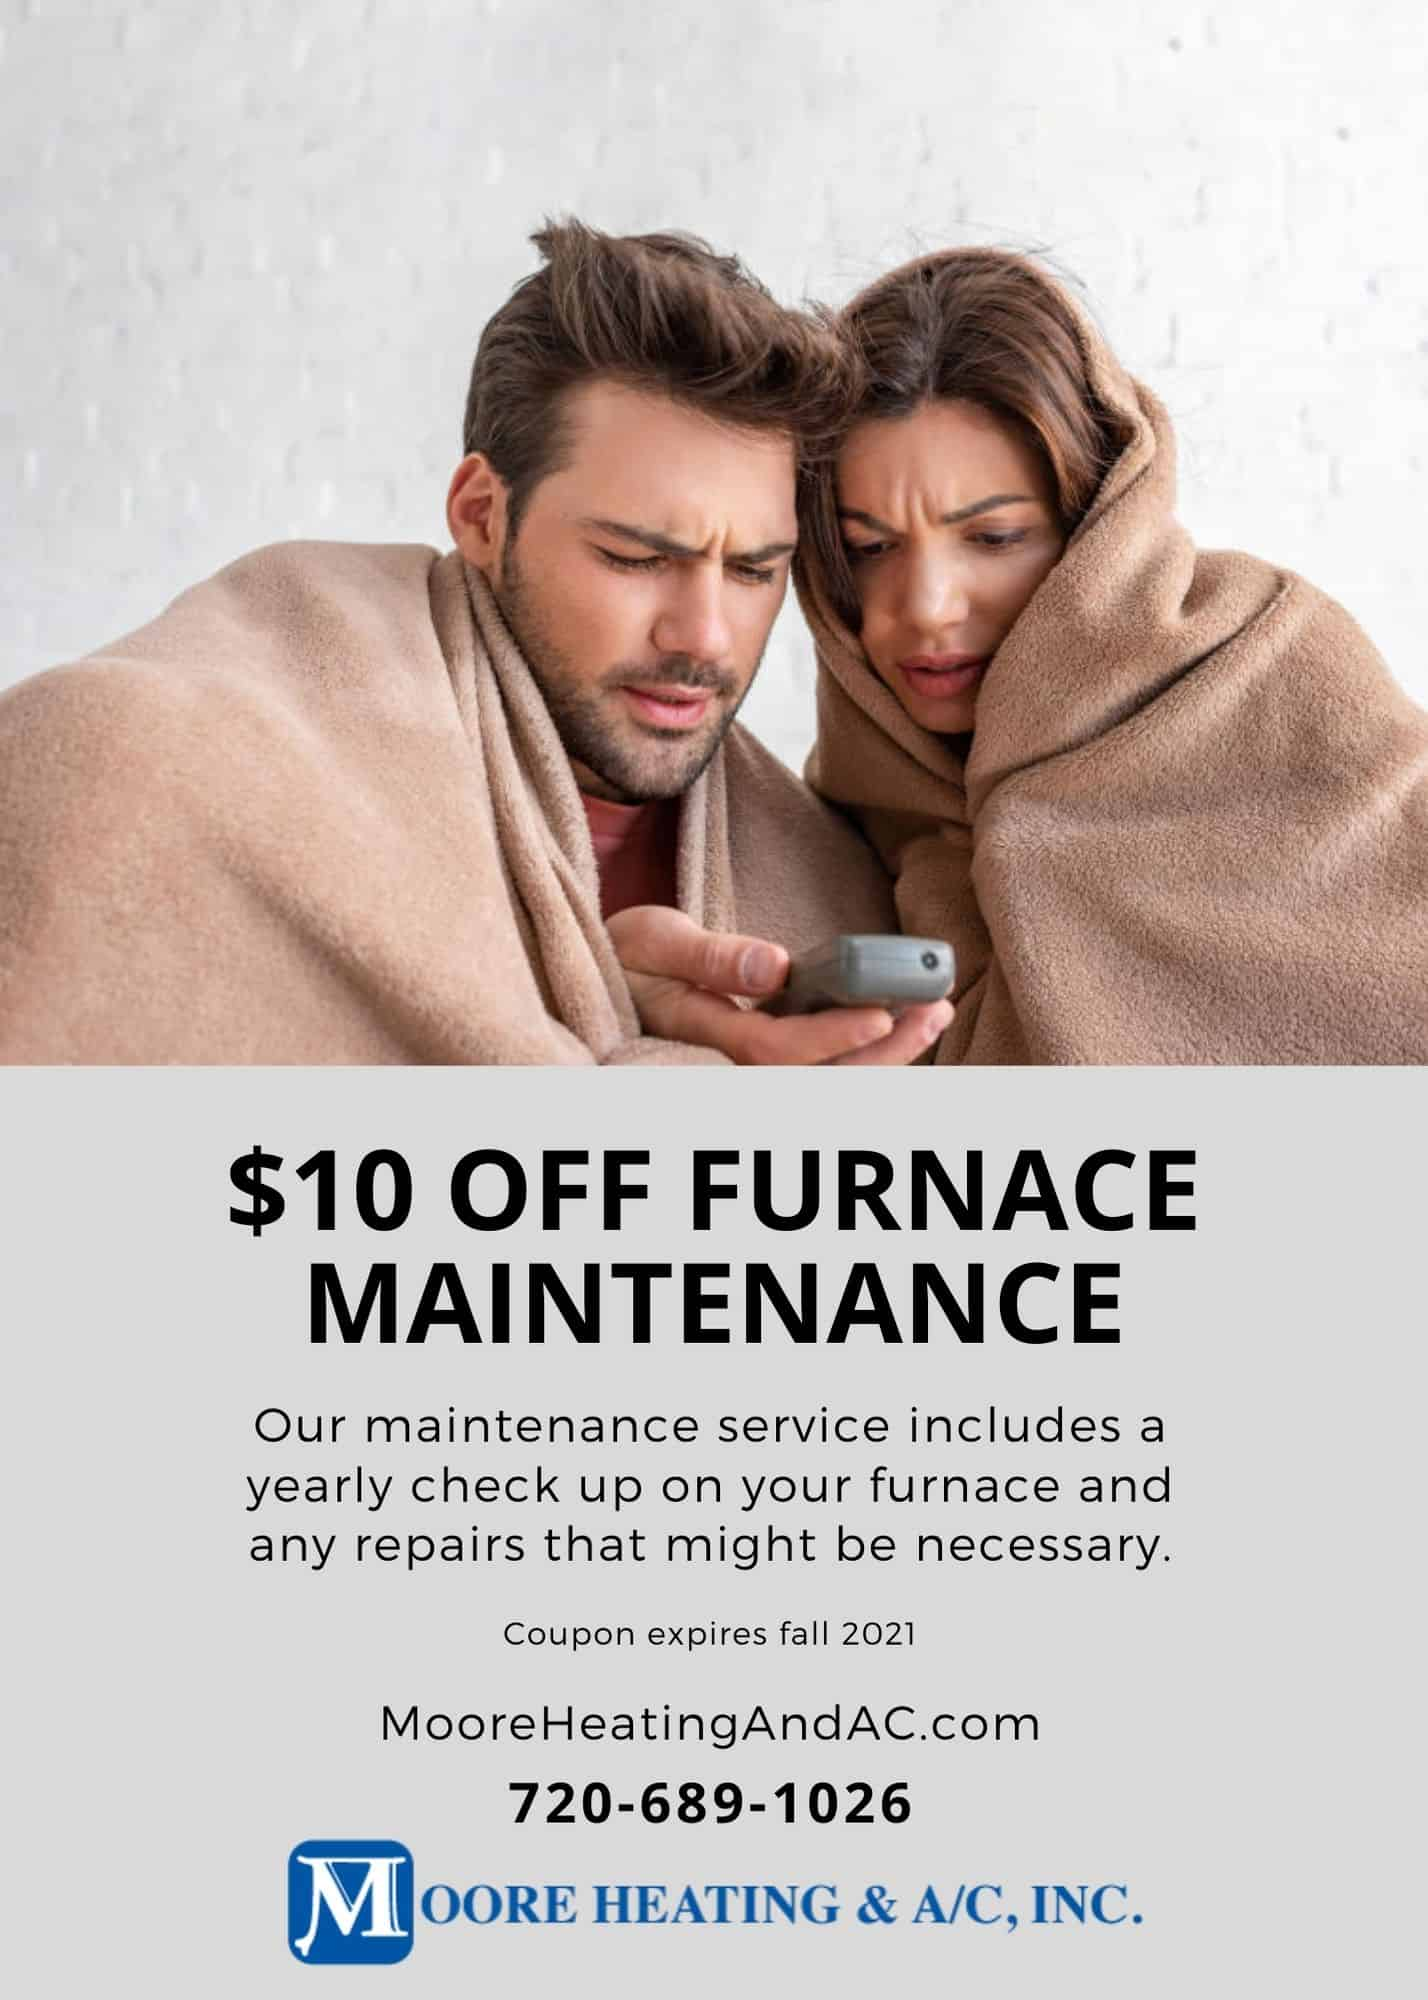 Furnace Maintenance Coupon